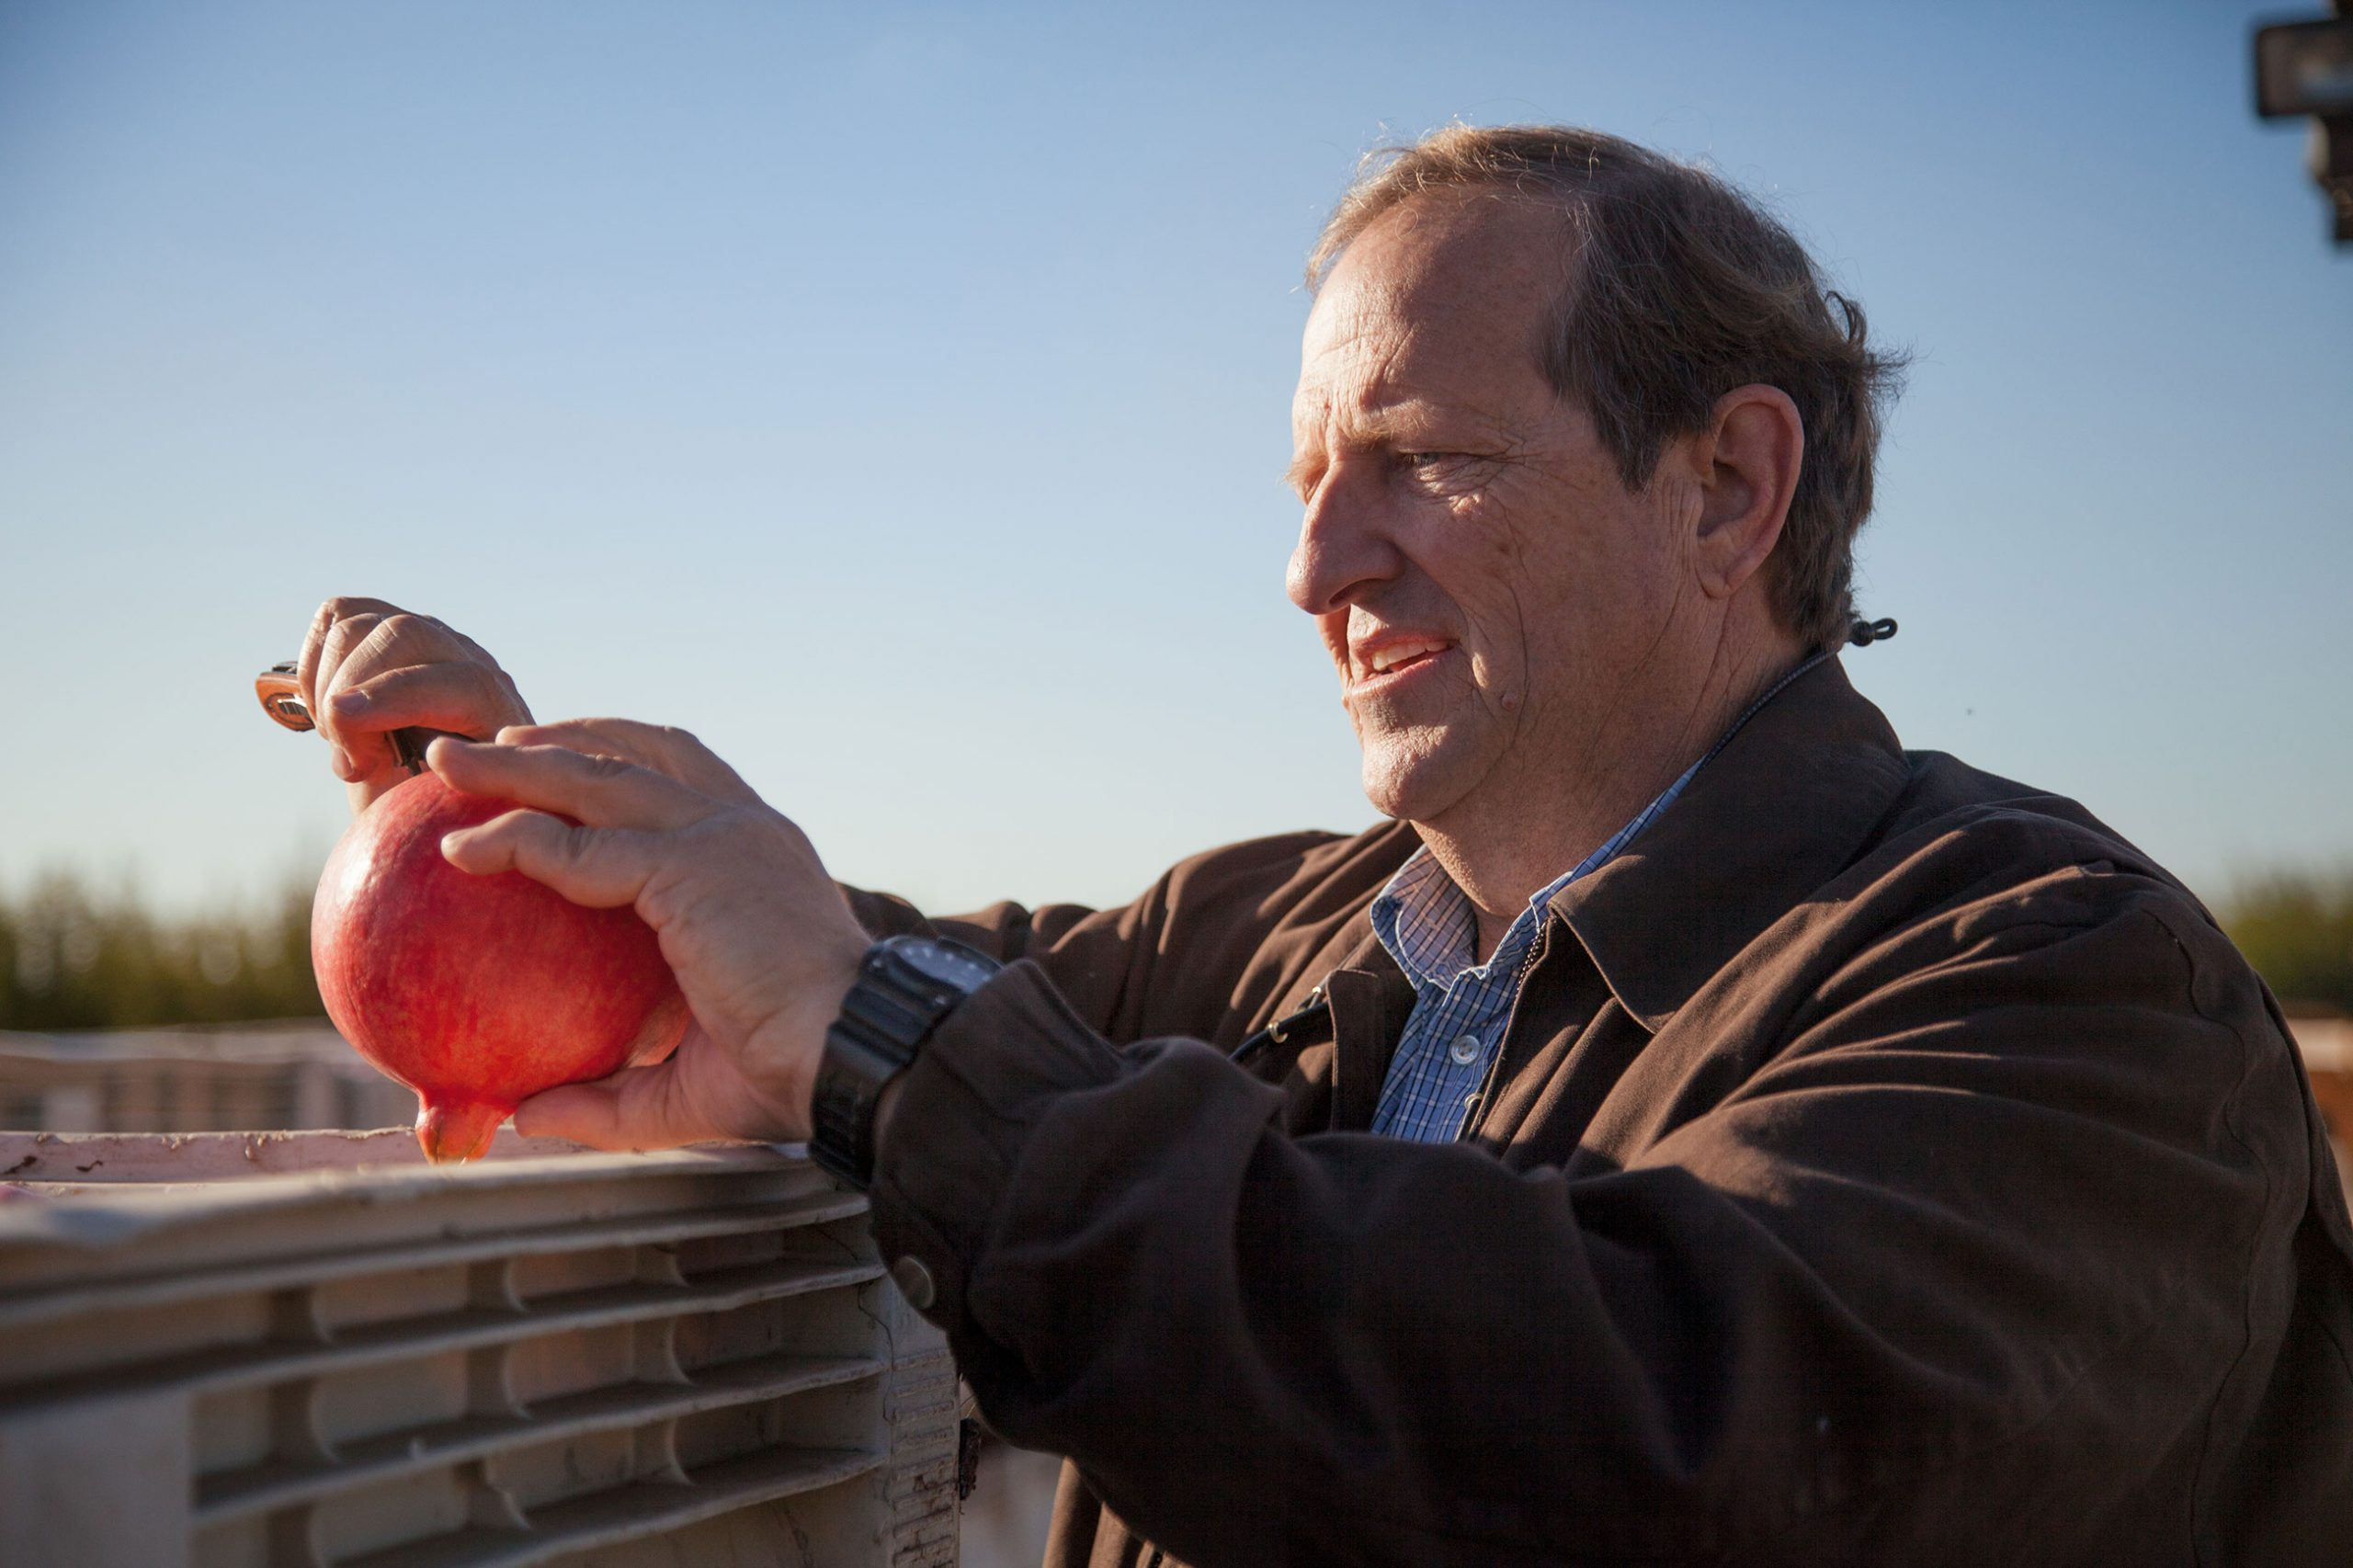 Chad Crivelli slices open an organic pomegranate